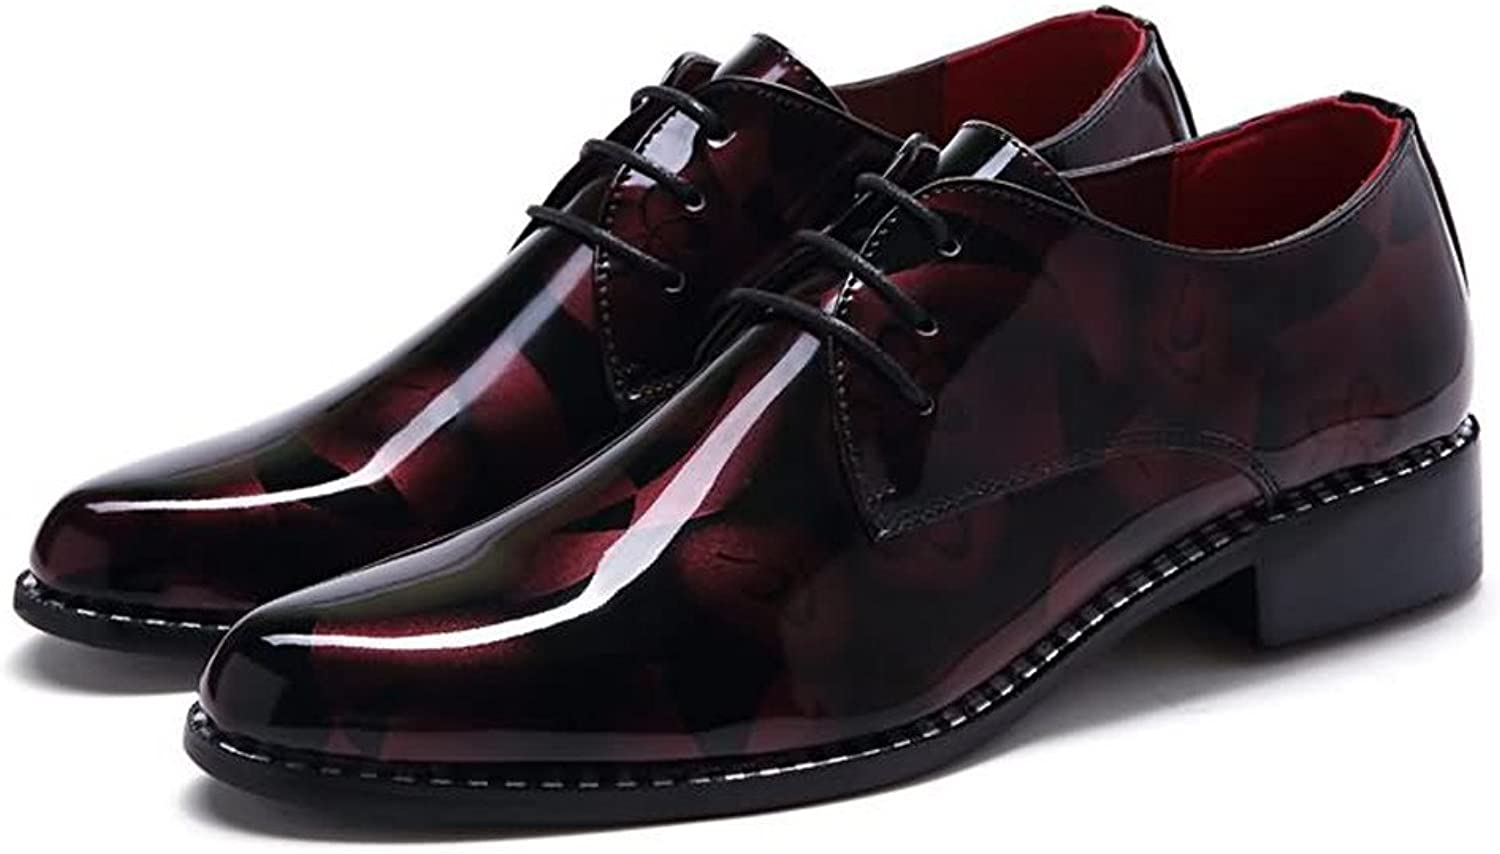 Patent leather Men's Loafer Flat Heel Camouflage pattern Fashion classic print without fading smooth mirror Casual Business shoes Formal wear Dress shoes (color   Red, Size   8 UK)